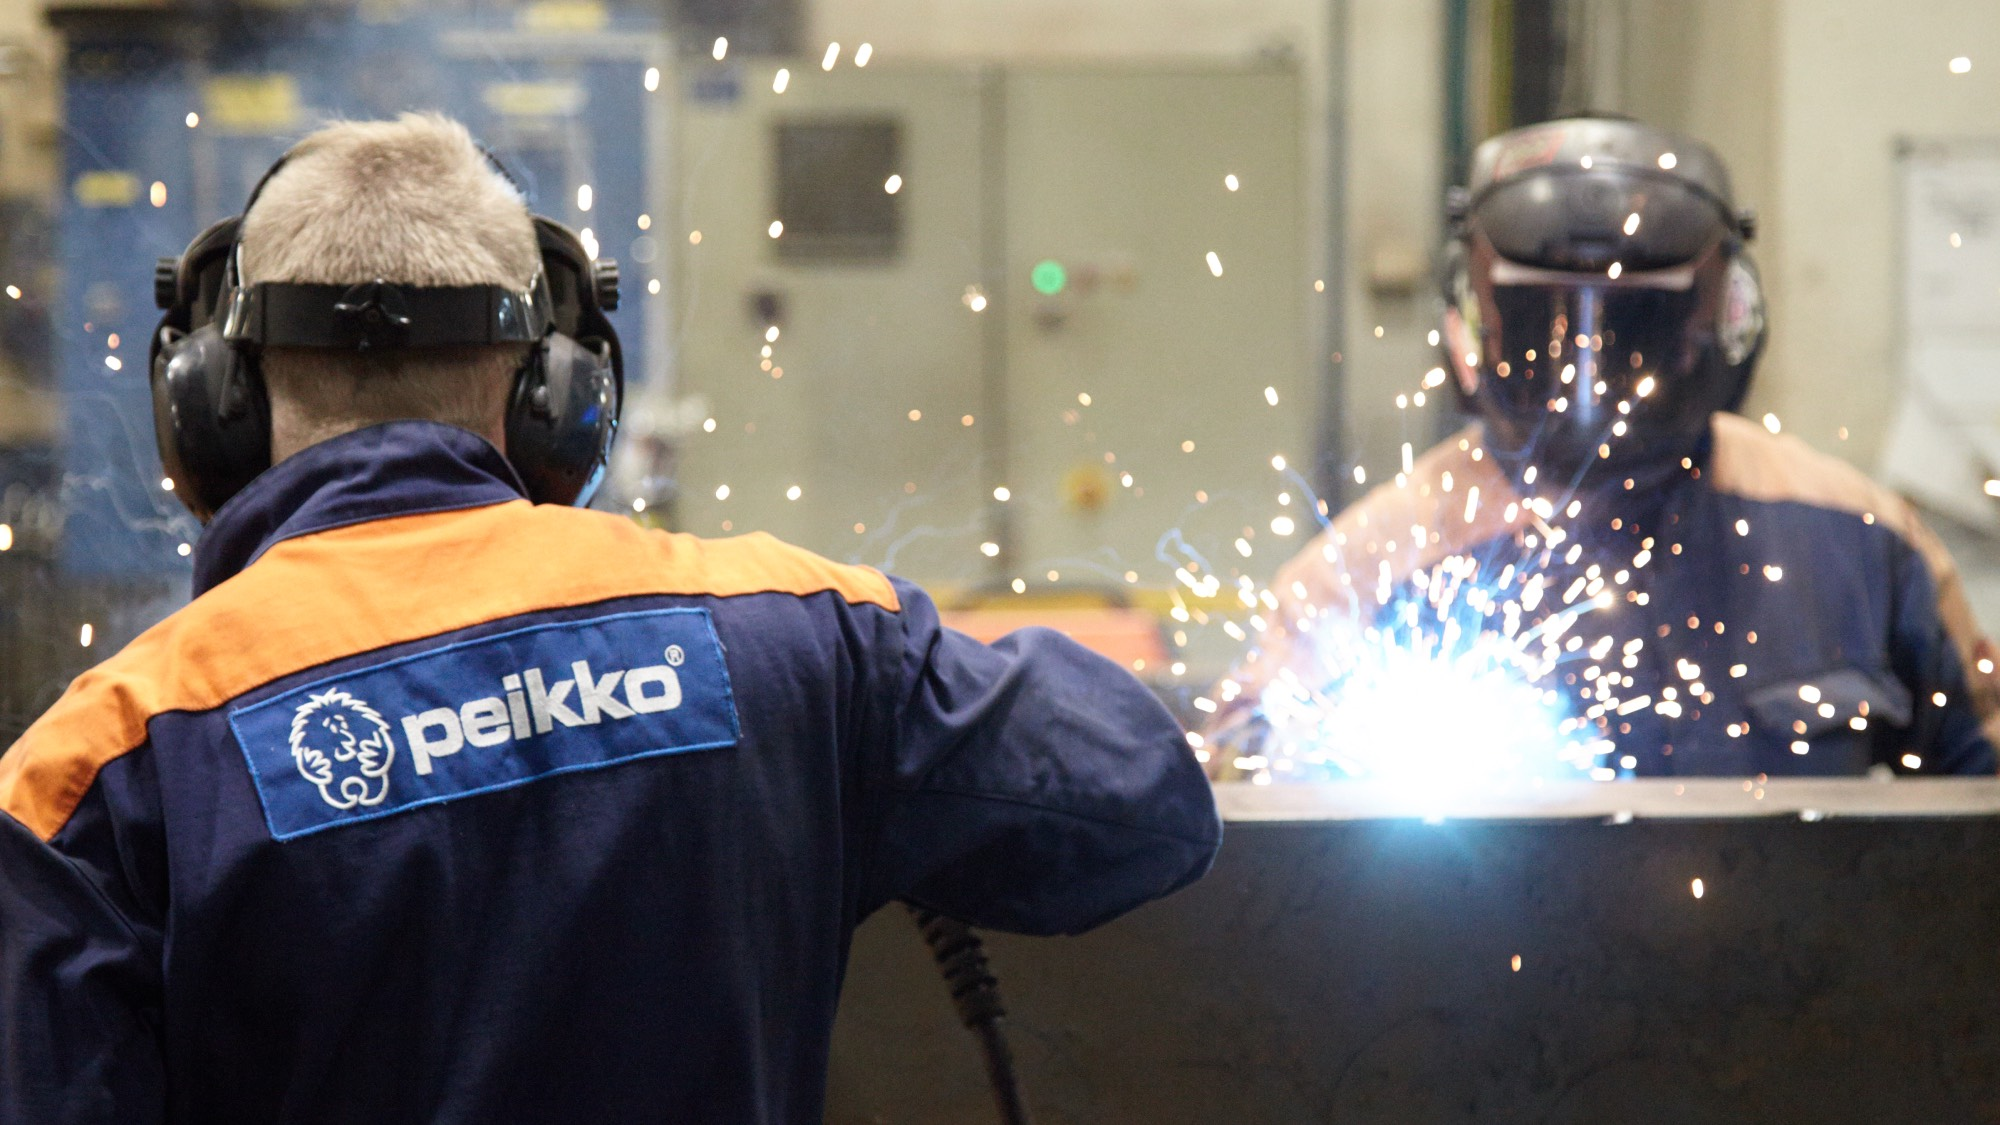 Peikko workers welding